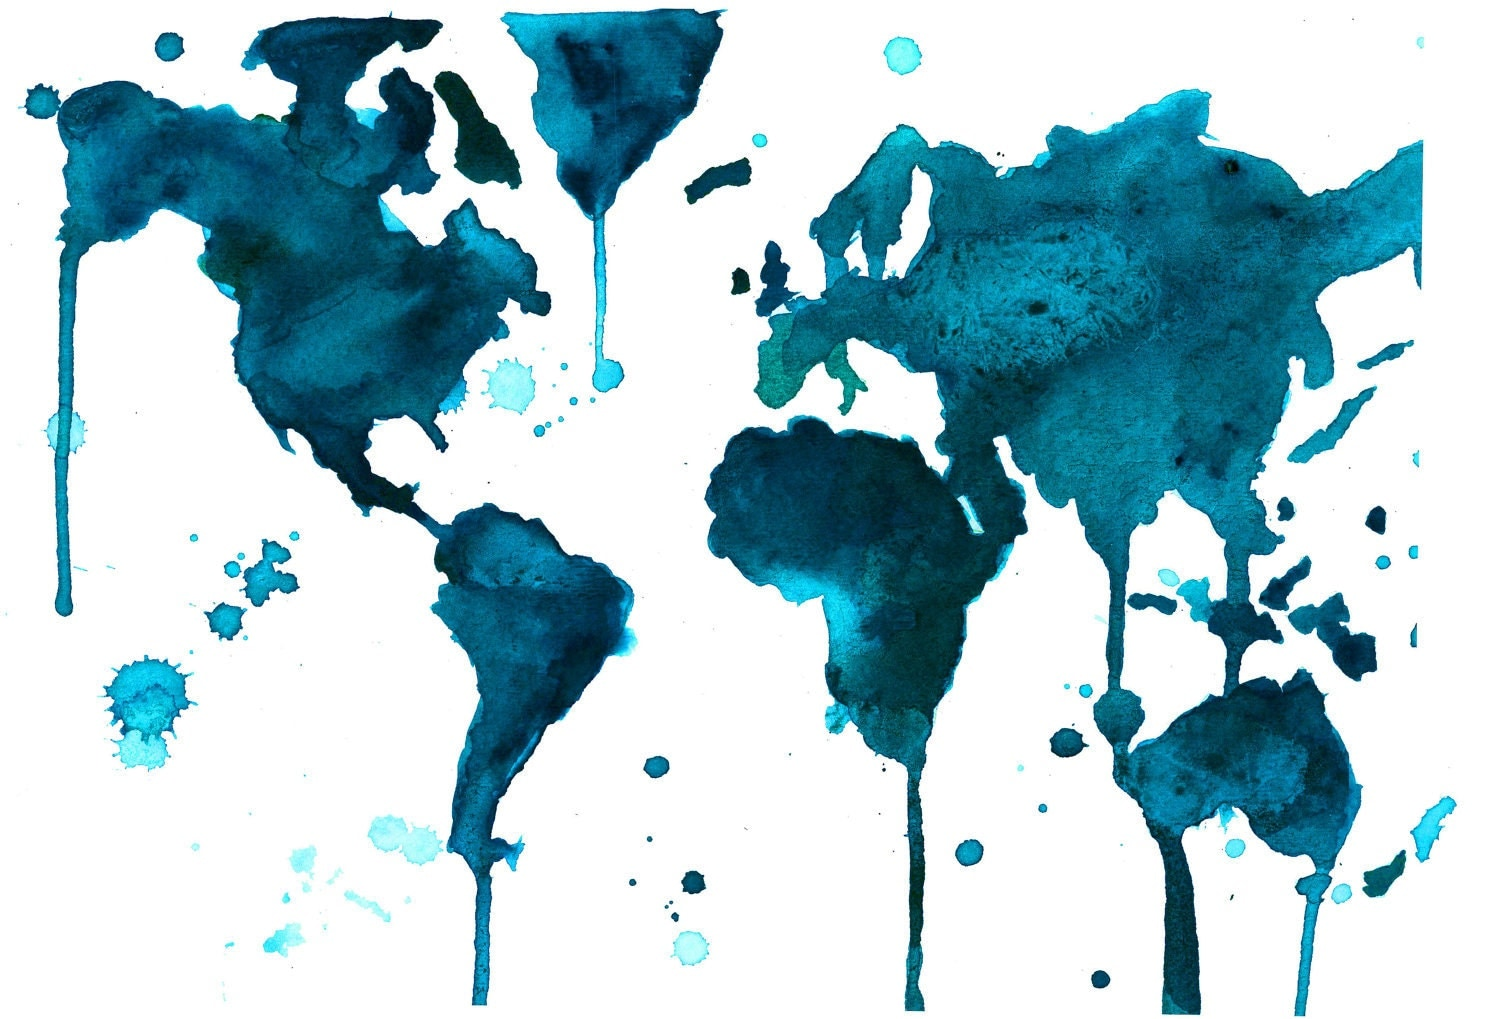 Watercolor World Map Painting by Jessica Durrant A Teal World